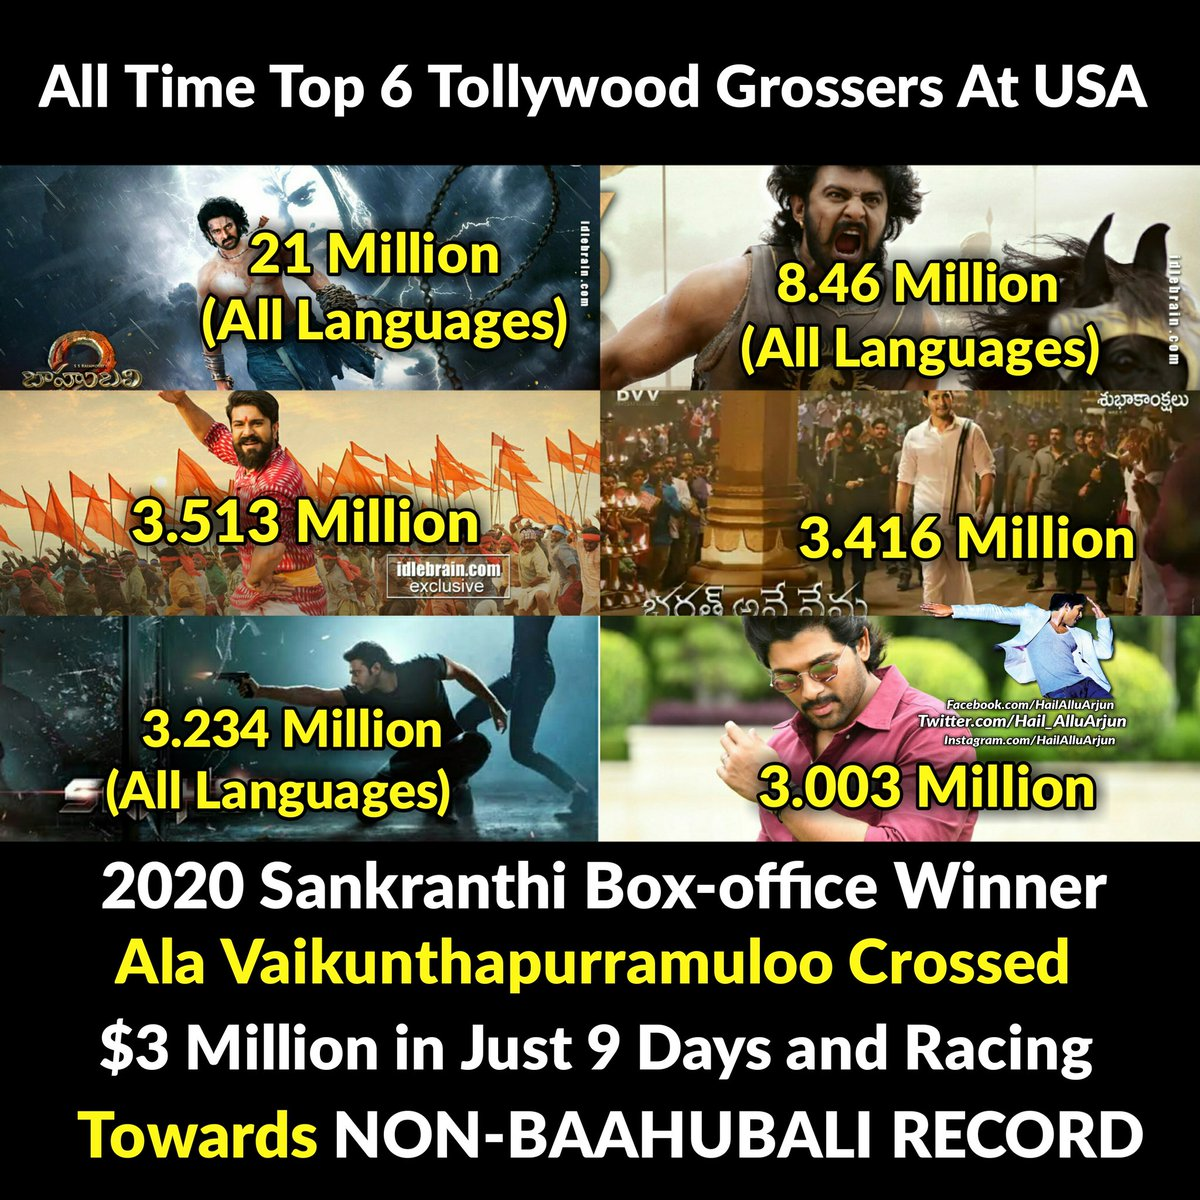 #AlaVaikunthapurramuloo Crossed $3 Million mark and racing towards NON-BAAHUBALI RECORD in USA   Present All Time 6th Highest Grosser at USA  All Time Top 6 Tollywood Grossers @ USA : Baahubali2 Baahubali Rangastalam Bharat ane nenu Saaho AVPL  #AVPLSankranthiWinner<br>http://pic.twitter.com/SUQuZp7AyB